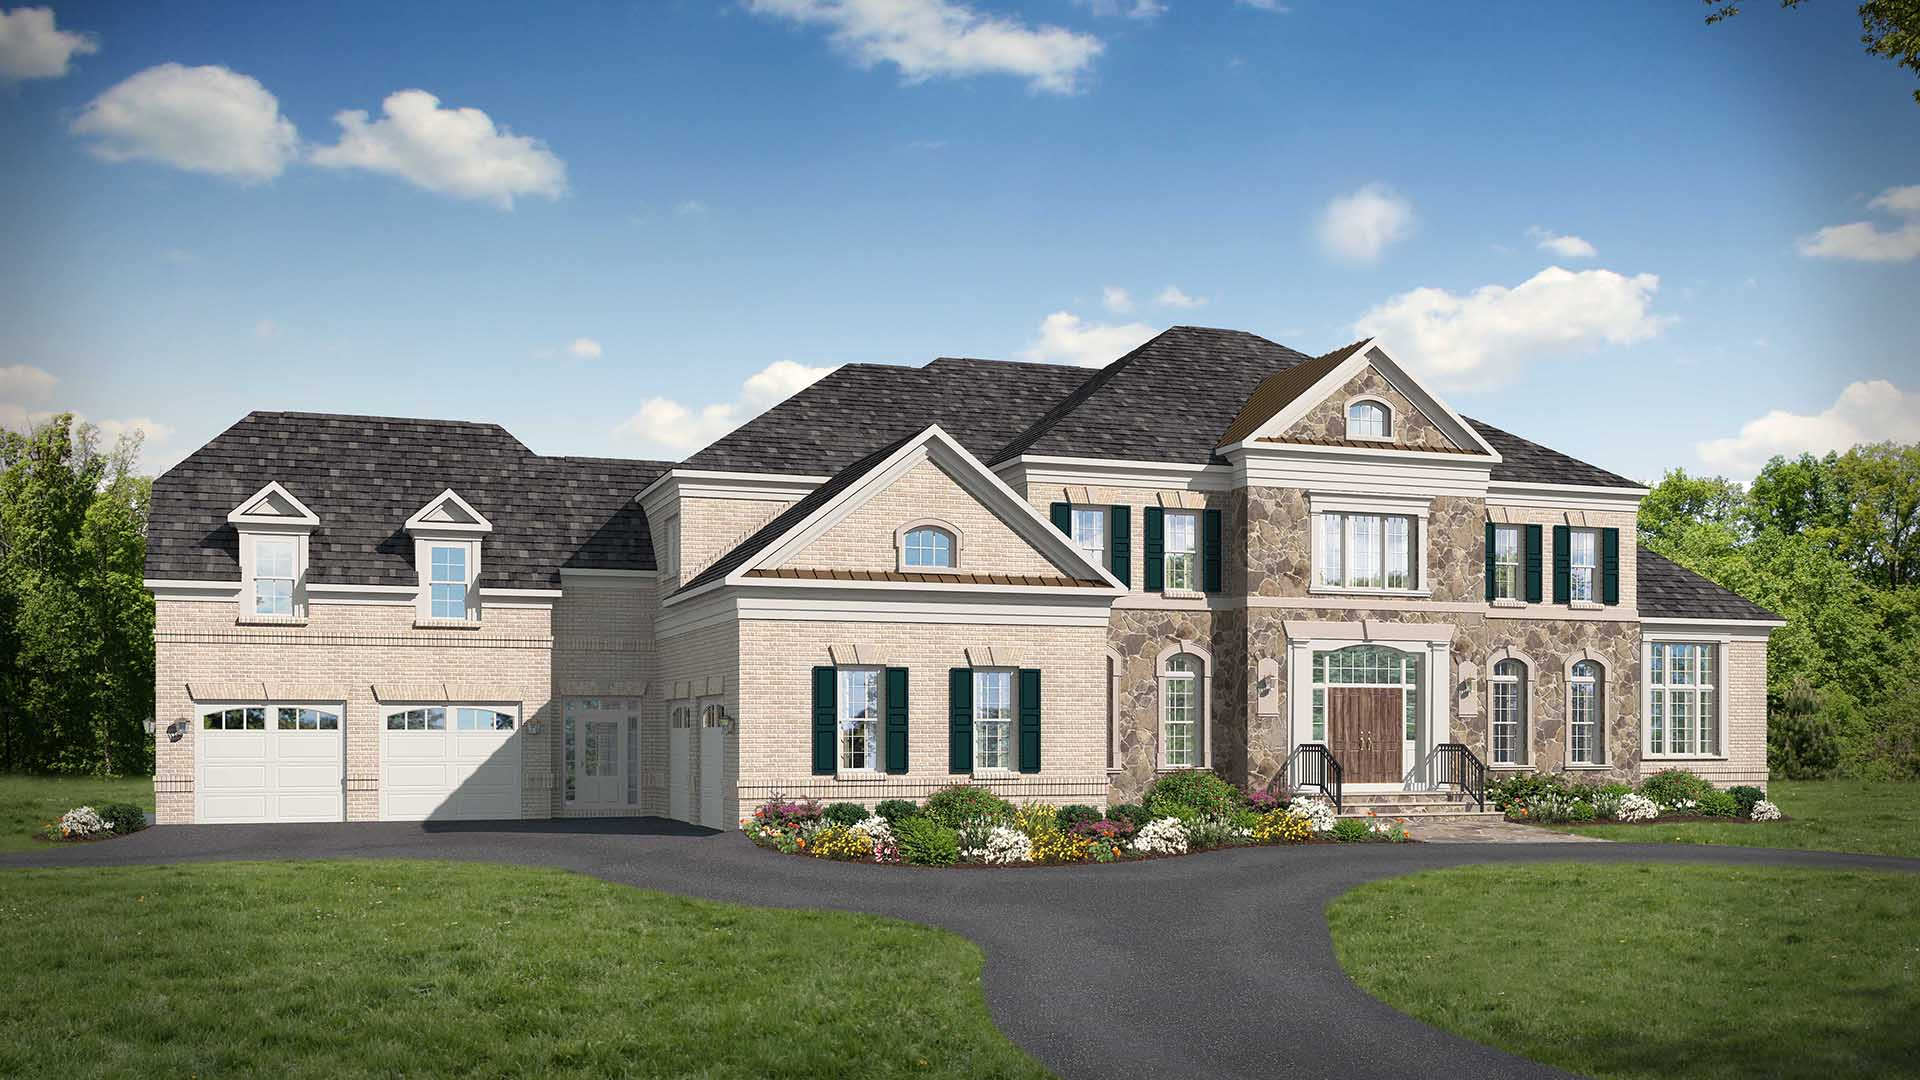 A rendering of the exterior elevation of a Gulick   One home built on Leigh Mill, prior to construction.